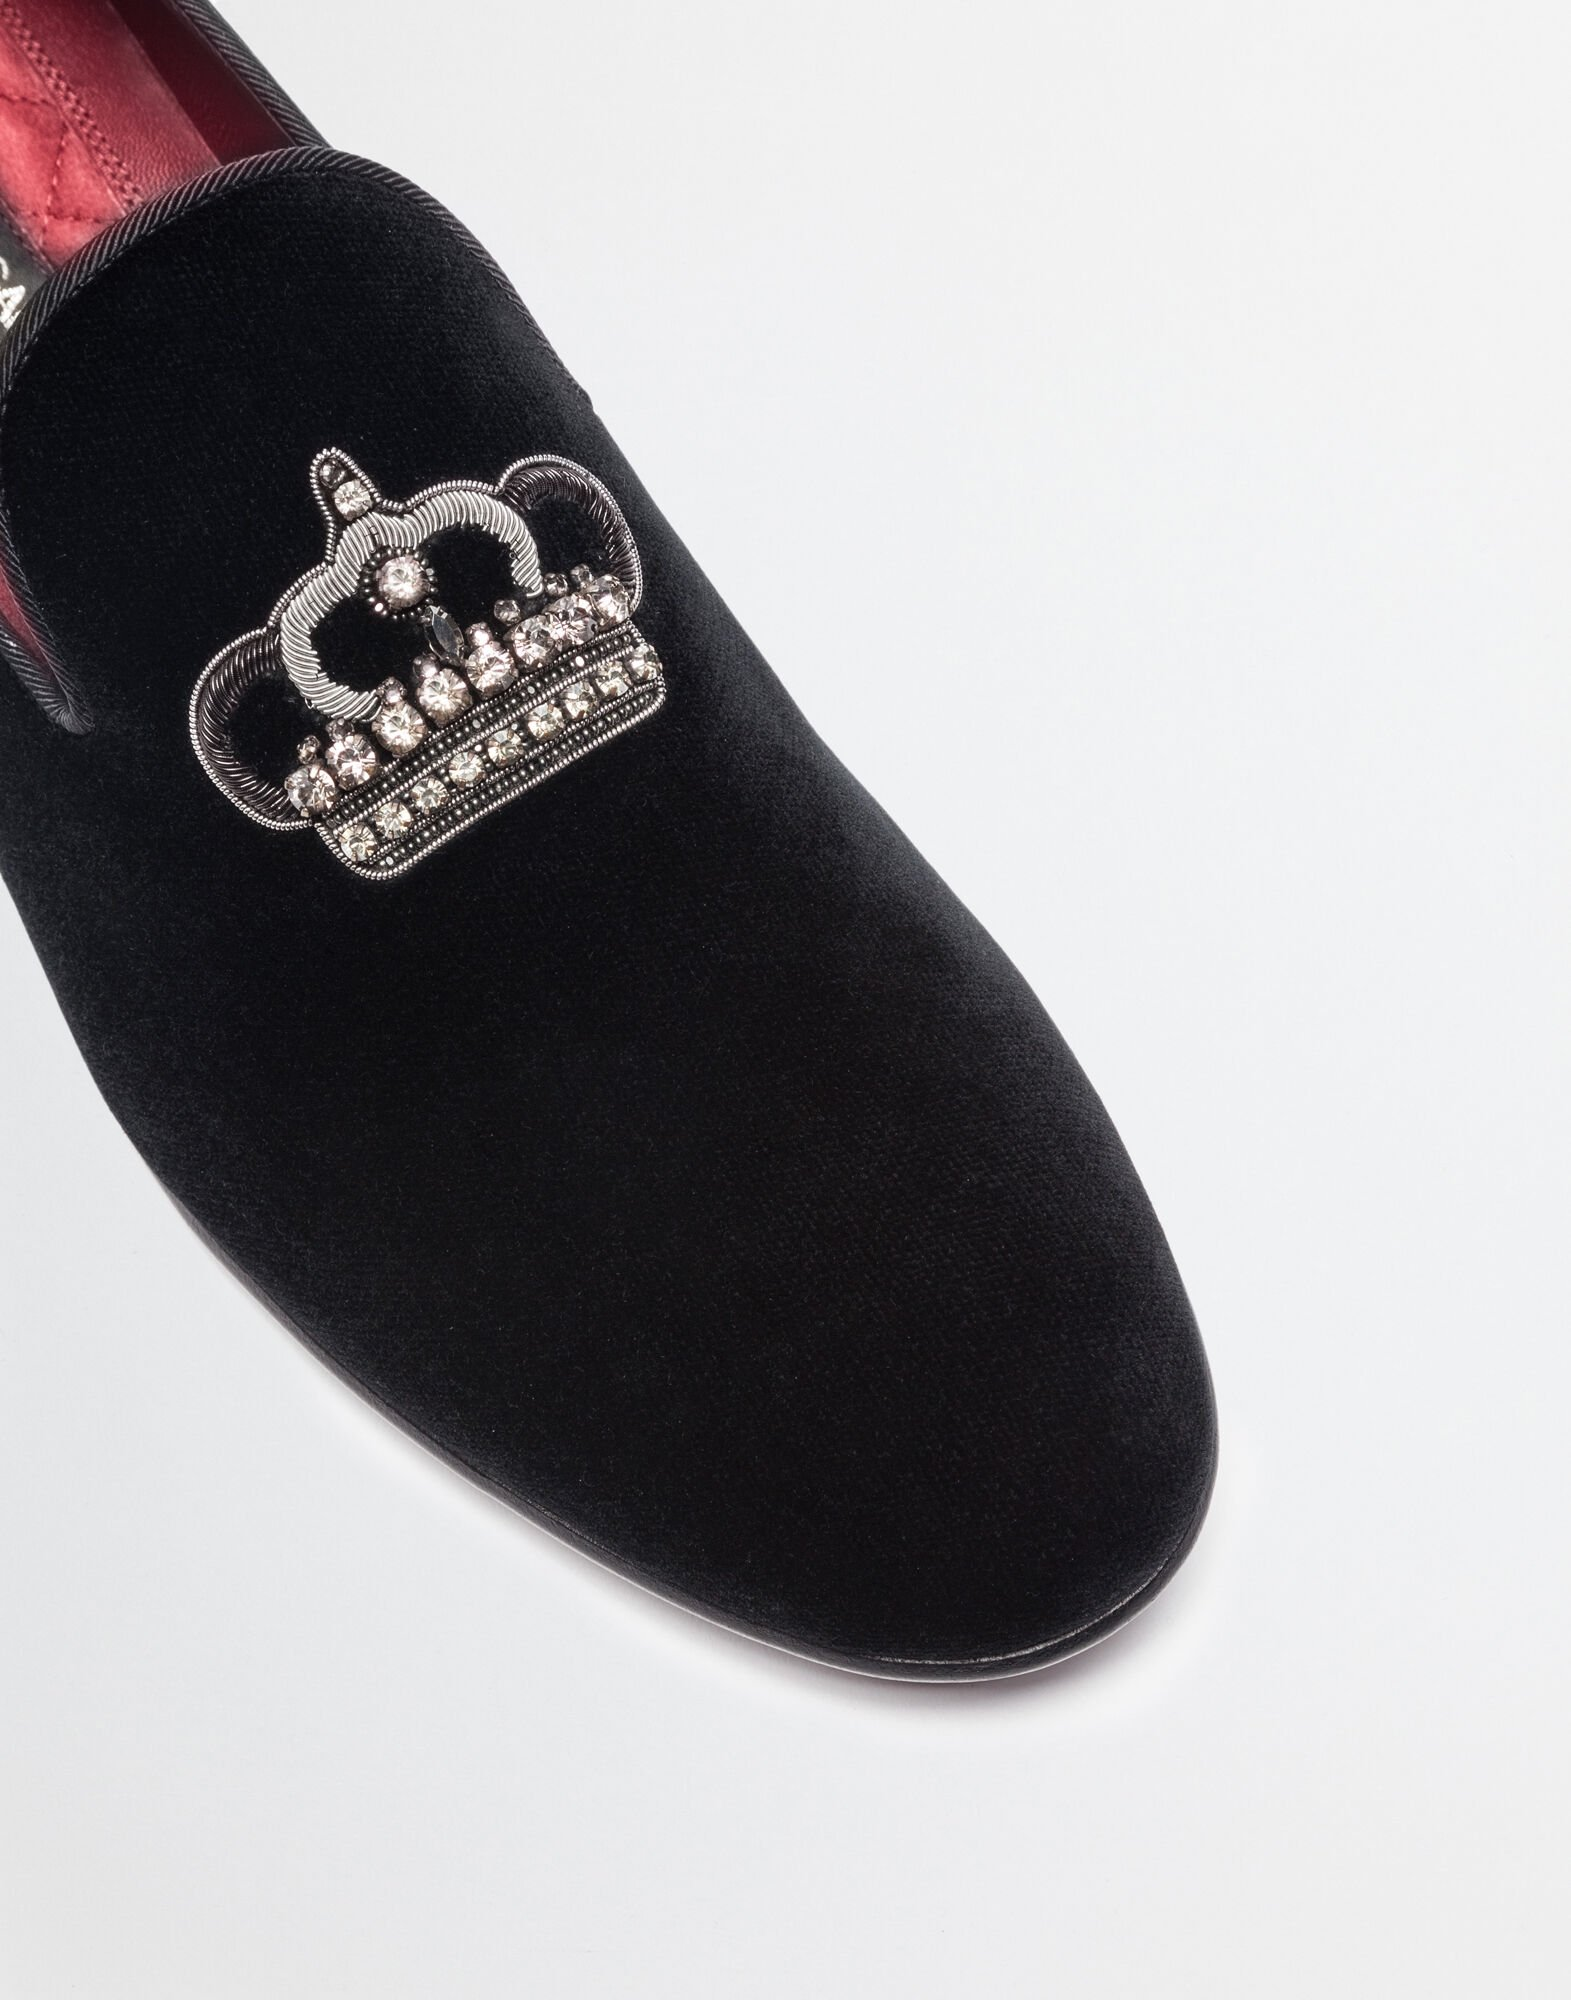 Dolce&Gabbana SLIPPERS IN VELVET WITH EMBROIDERY